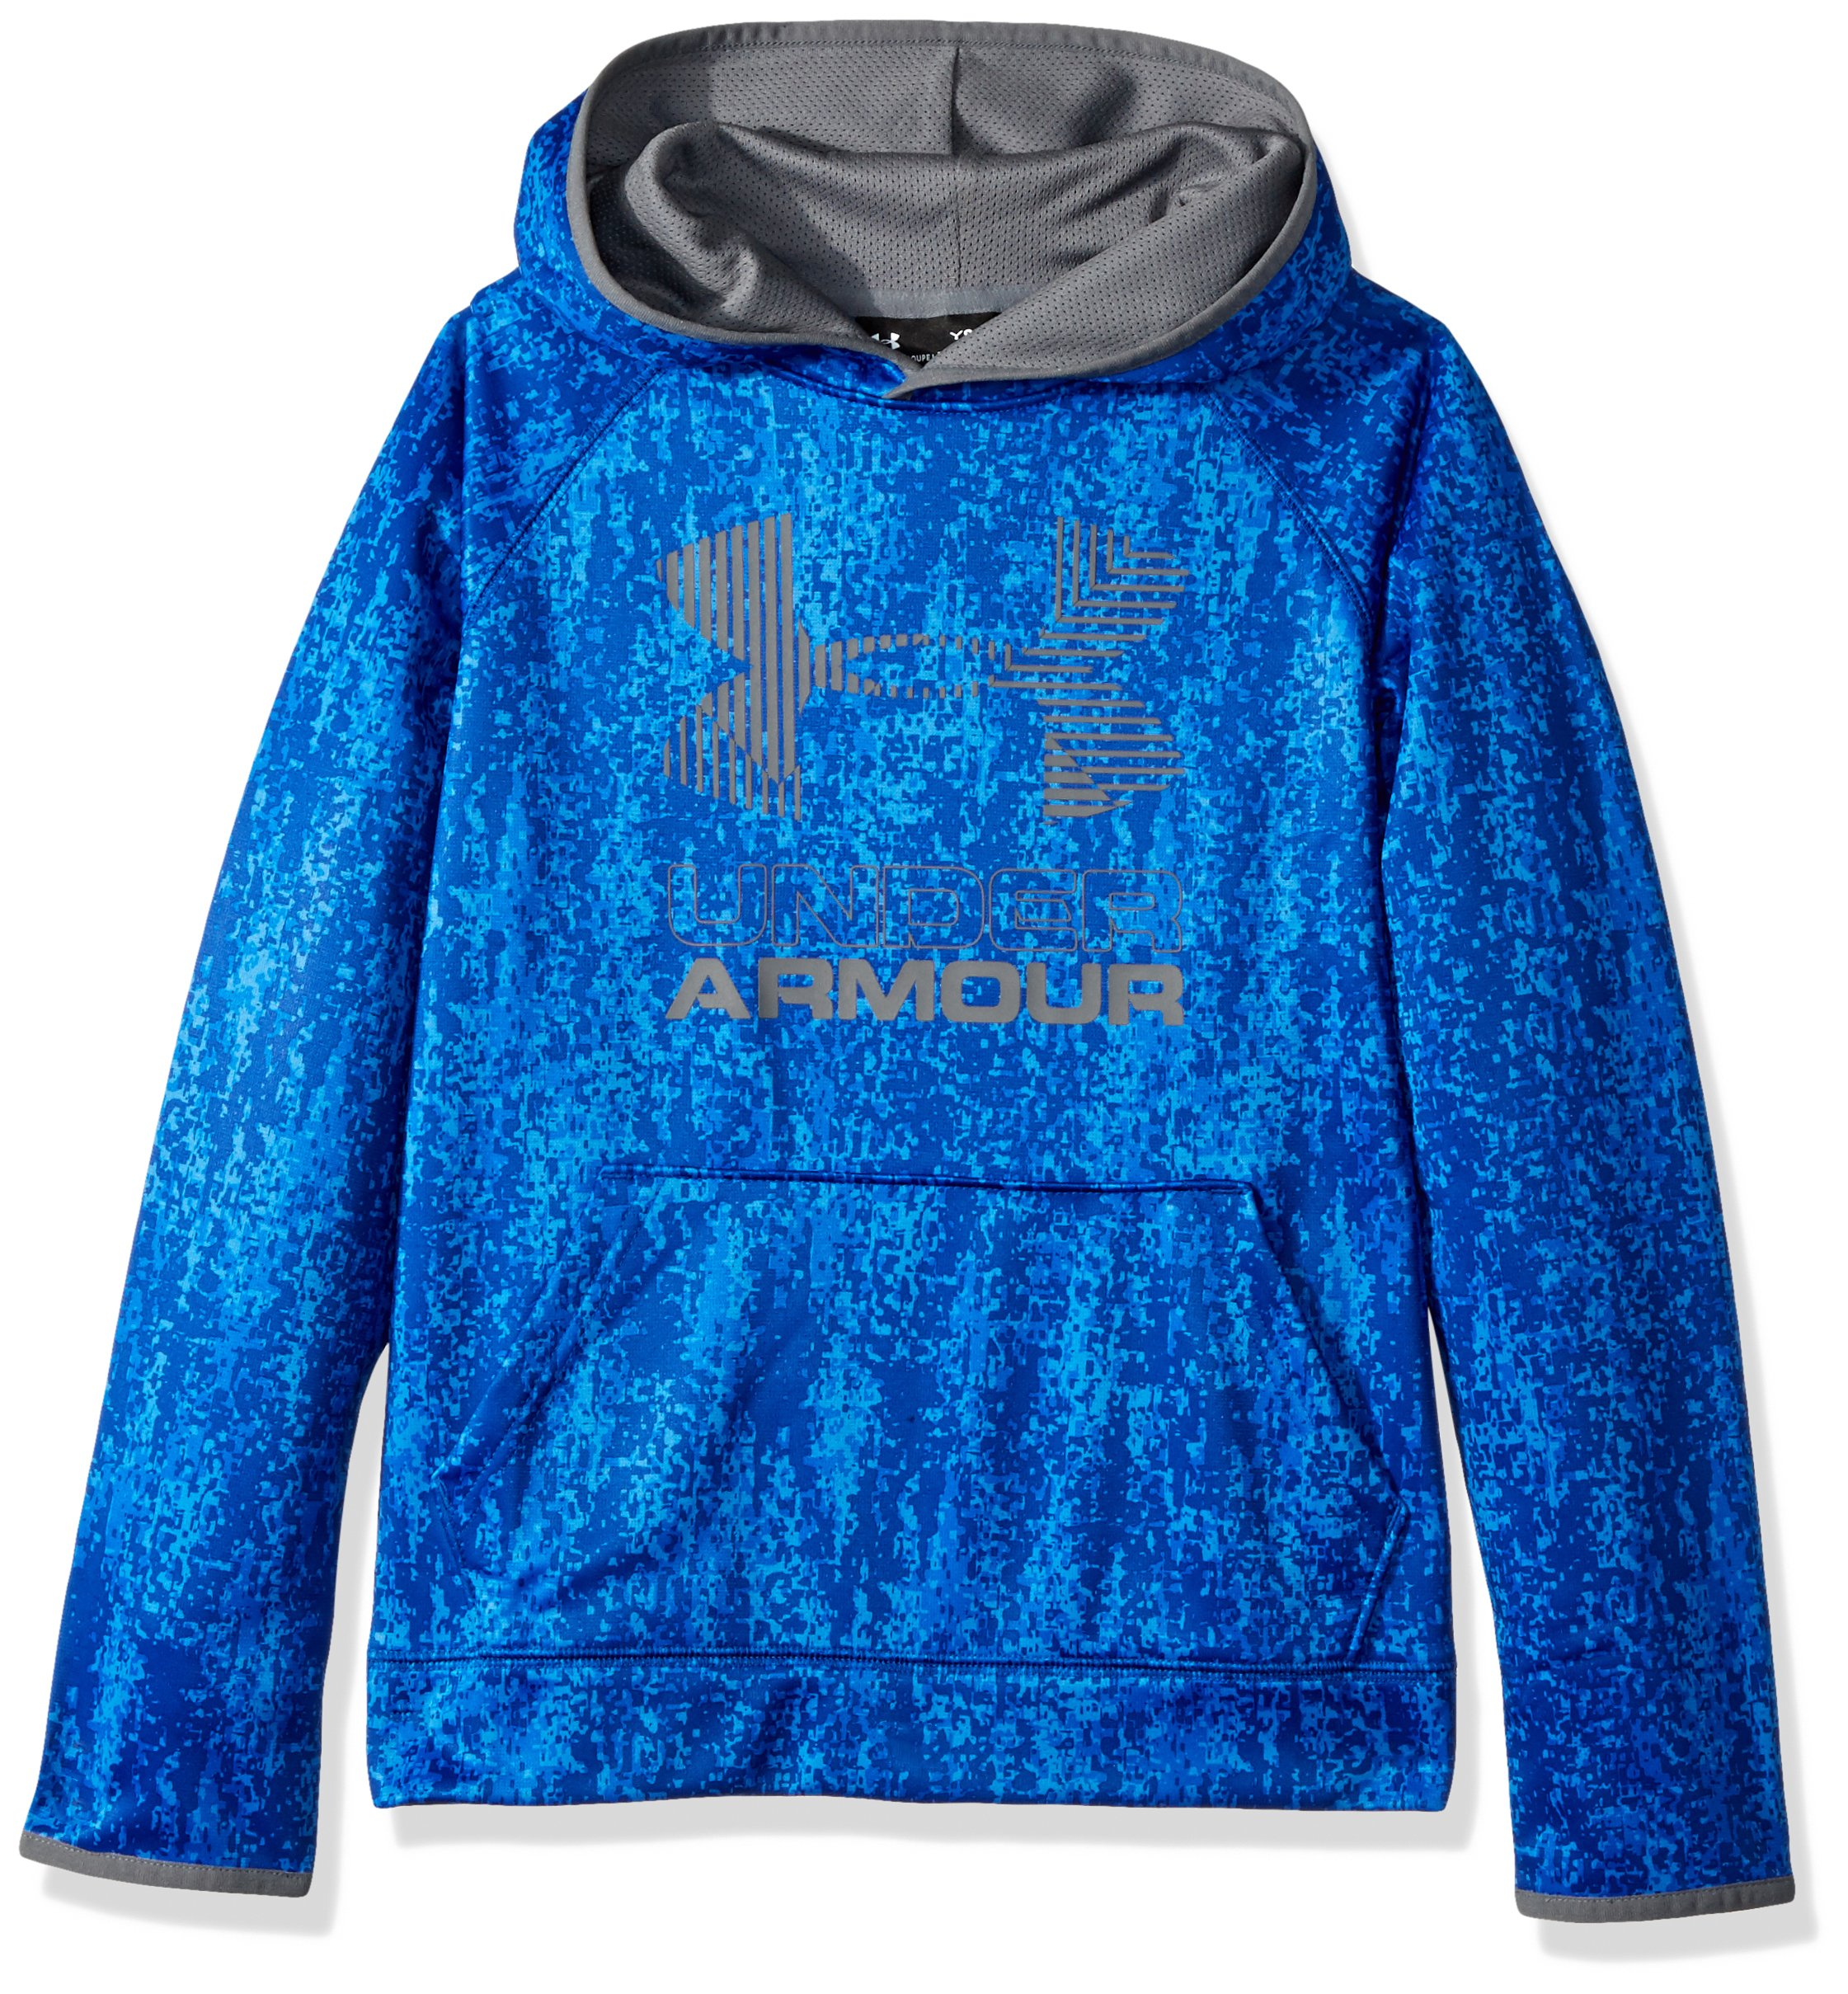 Under Armour Boys' Armour Fleece Printed Big Logo Hoodie, Ultra Blue /Ultra Blue, Youth X-Small by Under Armour